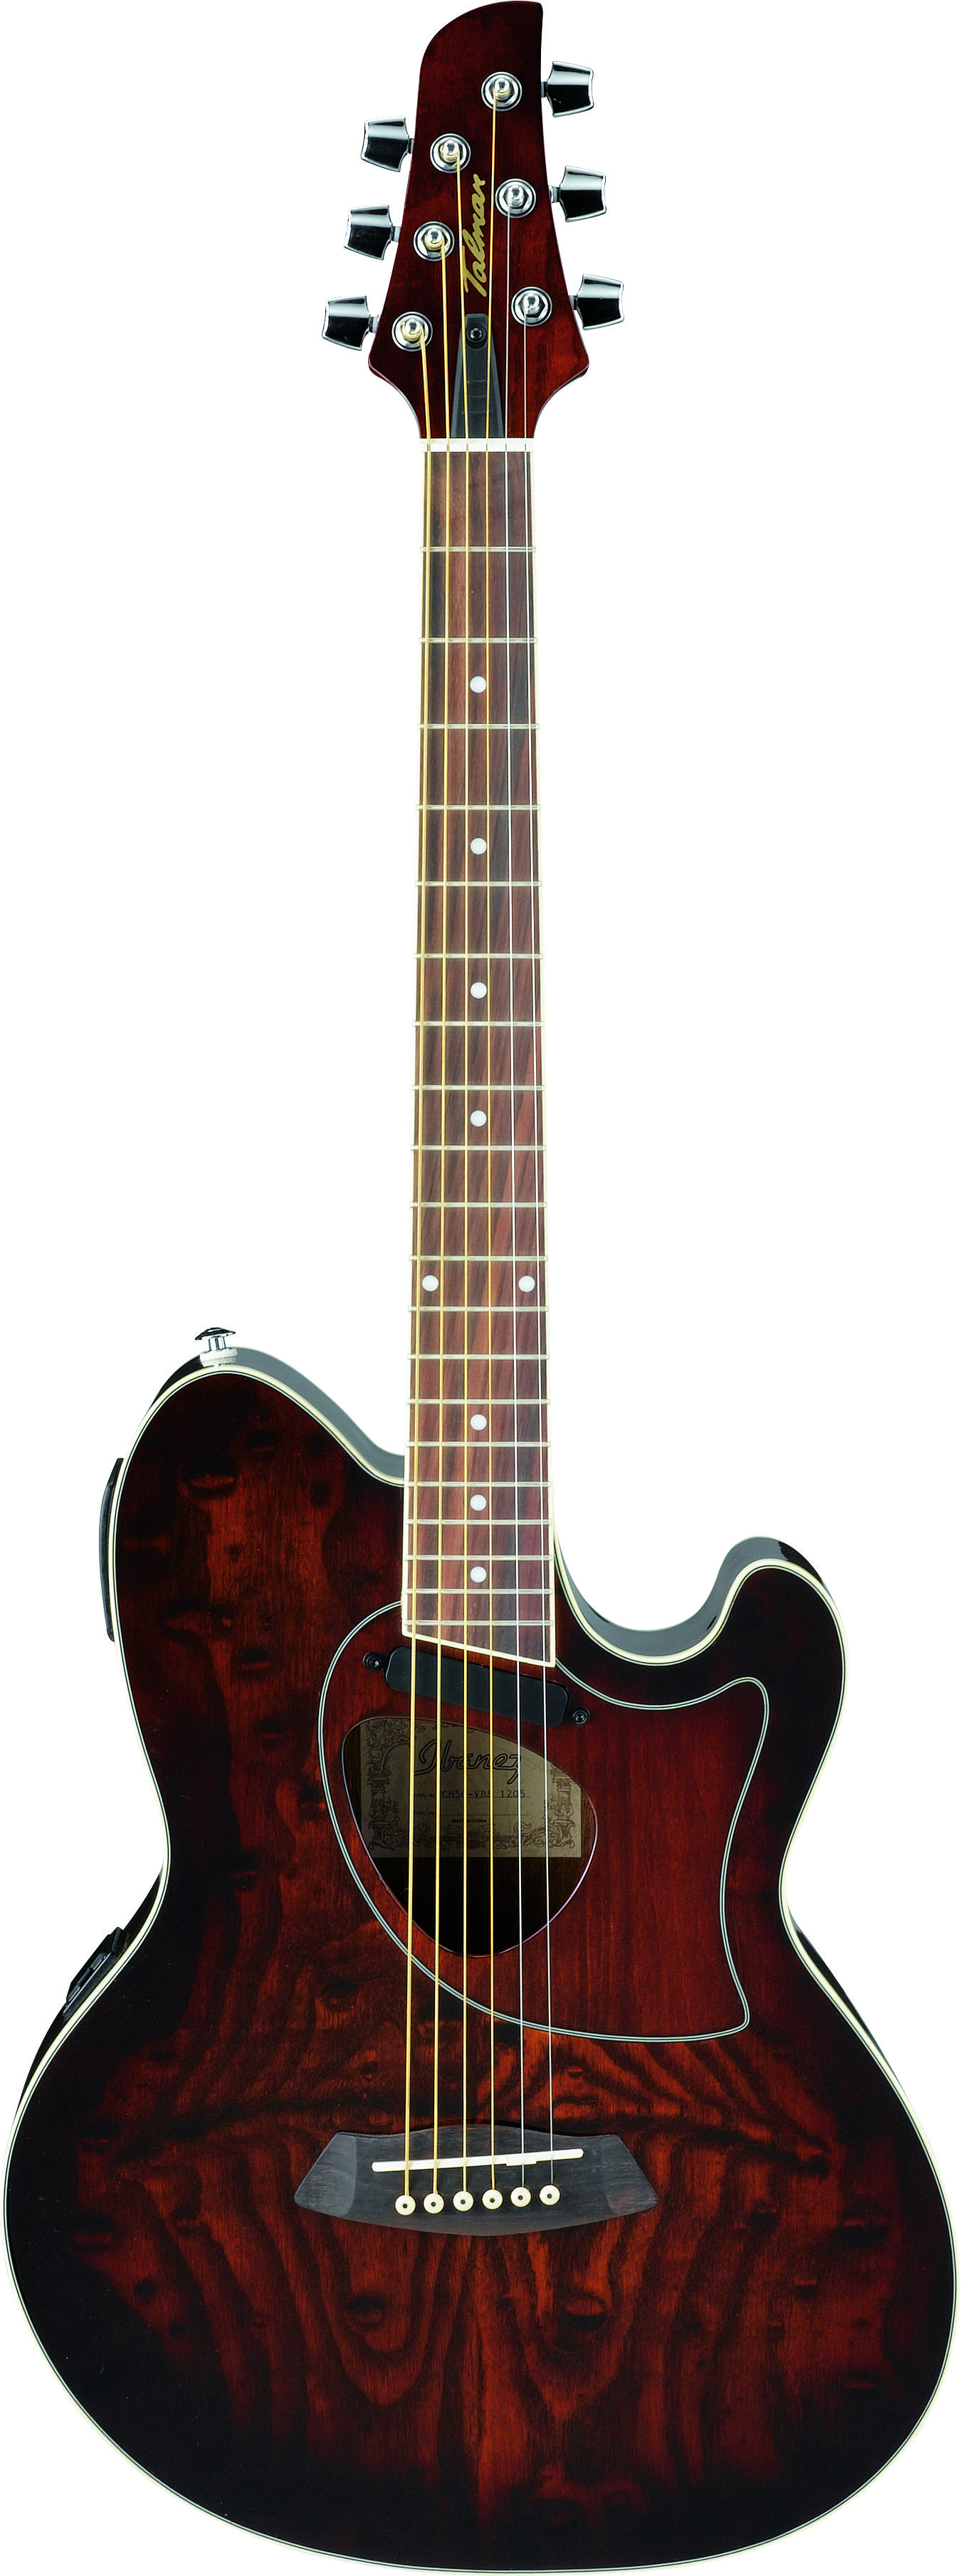 Ibanez TCM50VBS Acoustic Guitar - I already have an electric guitar in this list.